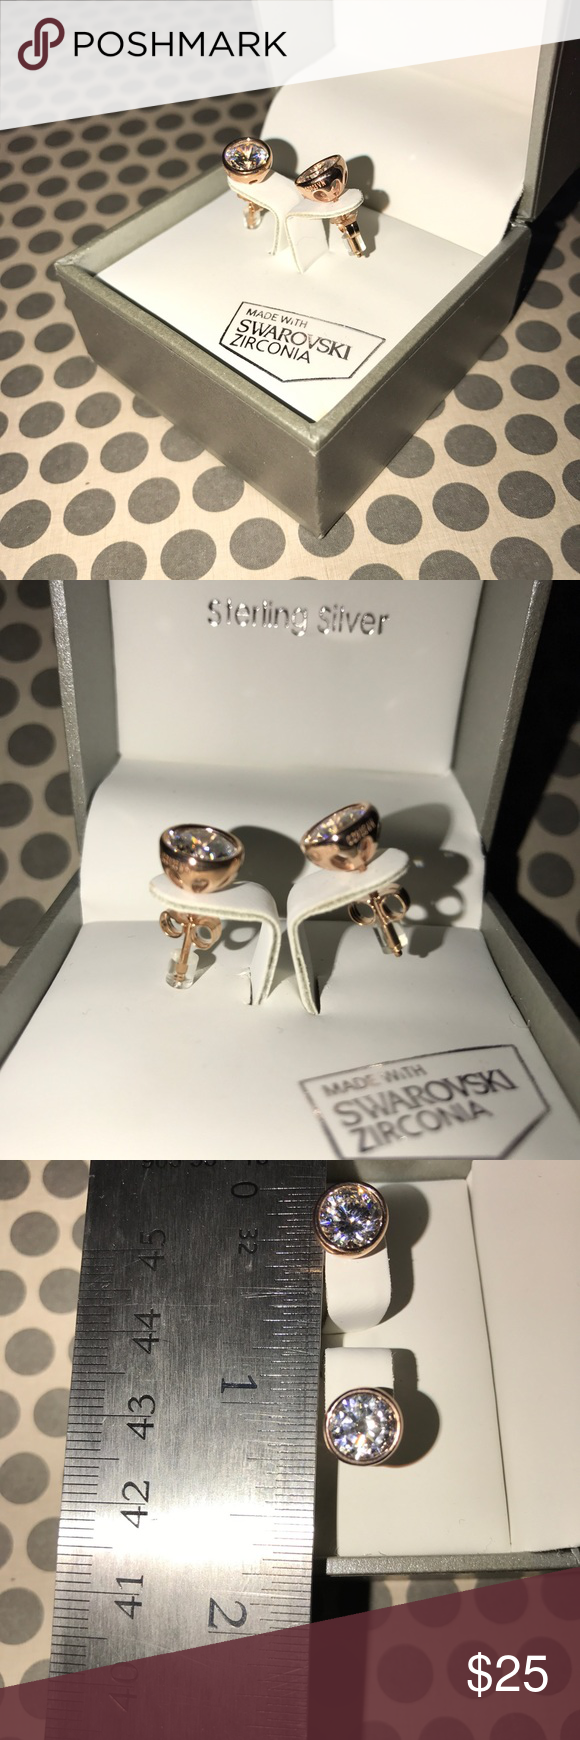 Swarovski Rose Gold Cubic Zirconia Earrings Studs Kiera Couture Over Sterling Silver